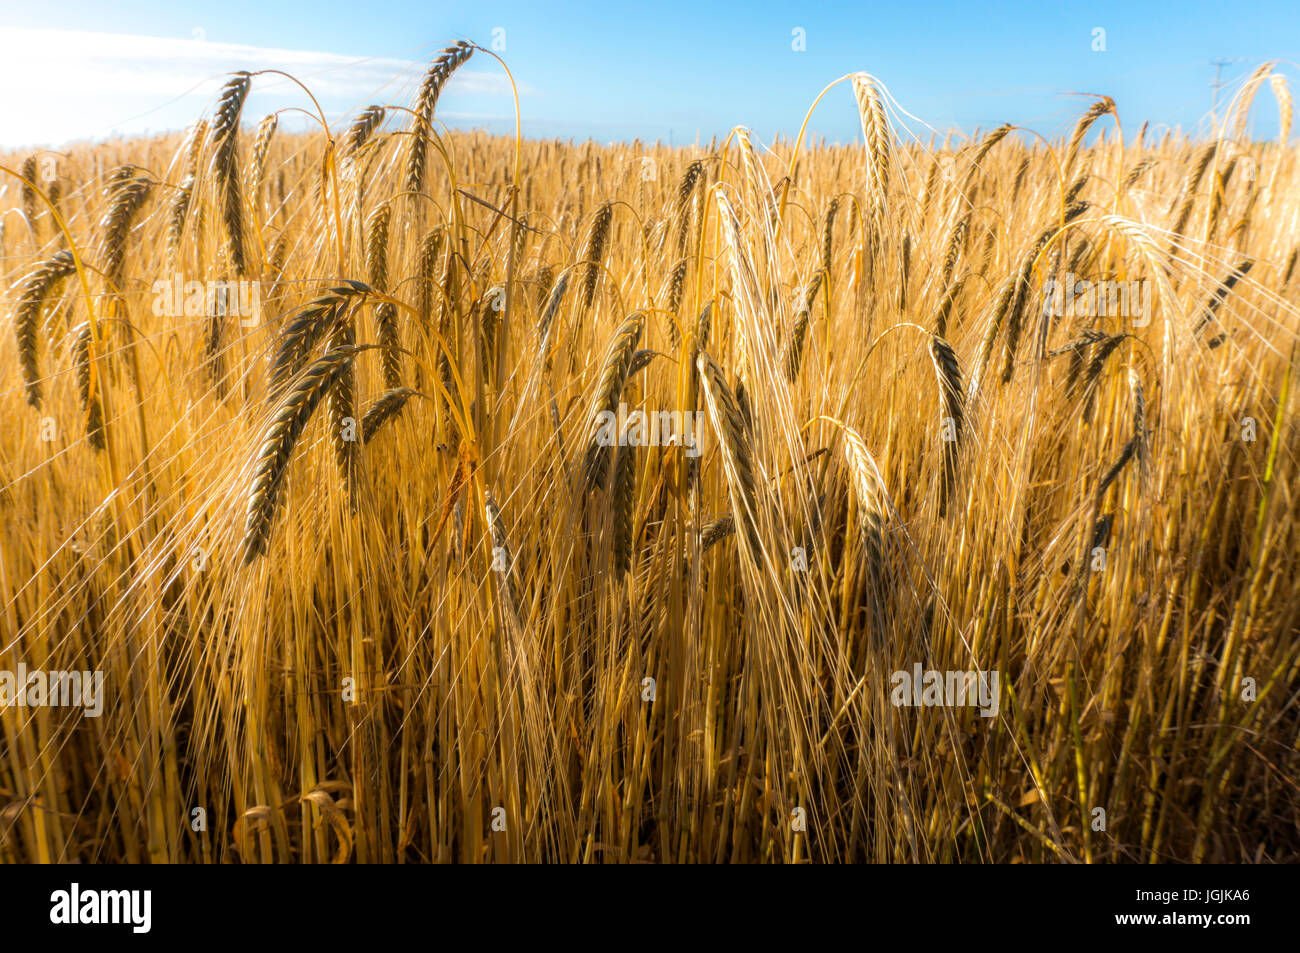 A close up of a crop of wheat growing in a field early on a summer morning, Langtoft, Lincolnshire, England, UK. - Stock Image